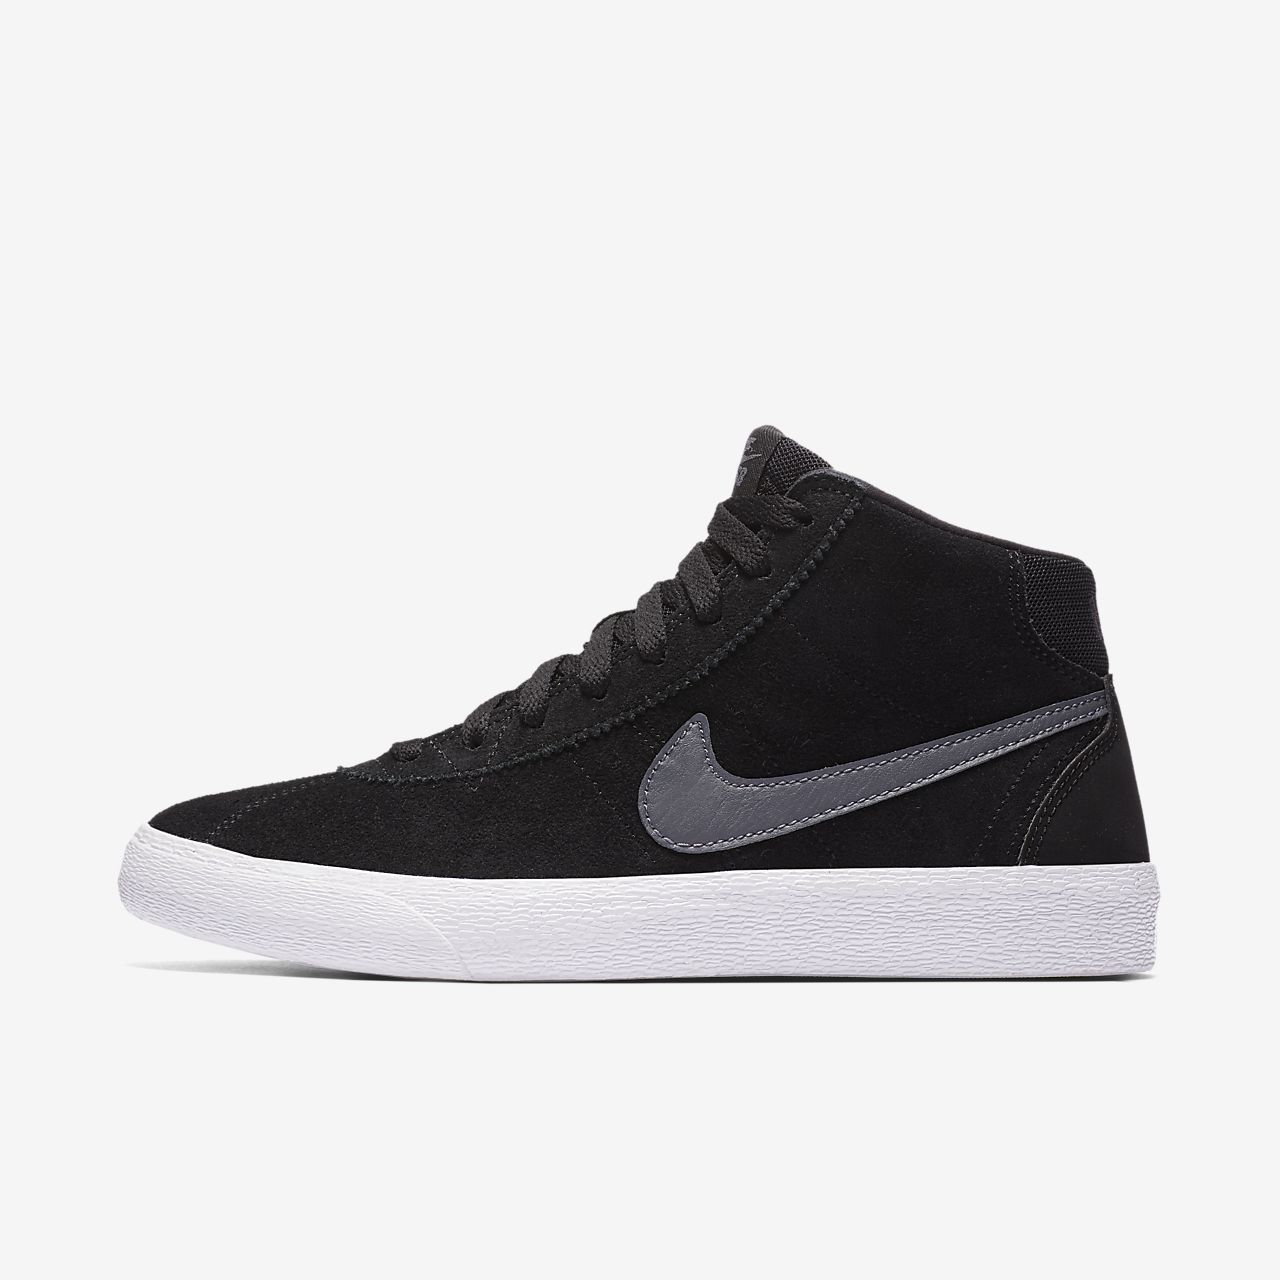 buy popular look for fashion style Nike SB Bruin High Skate Shoe